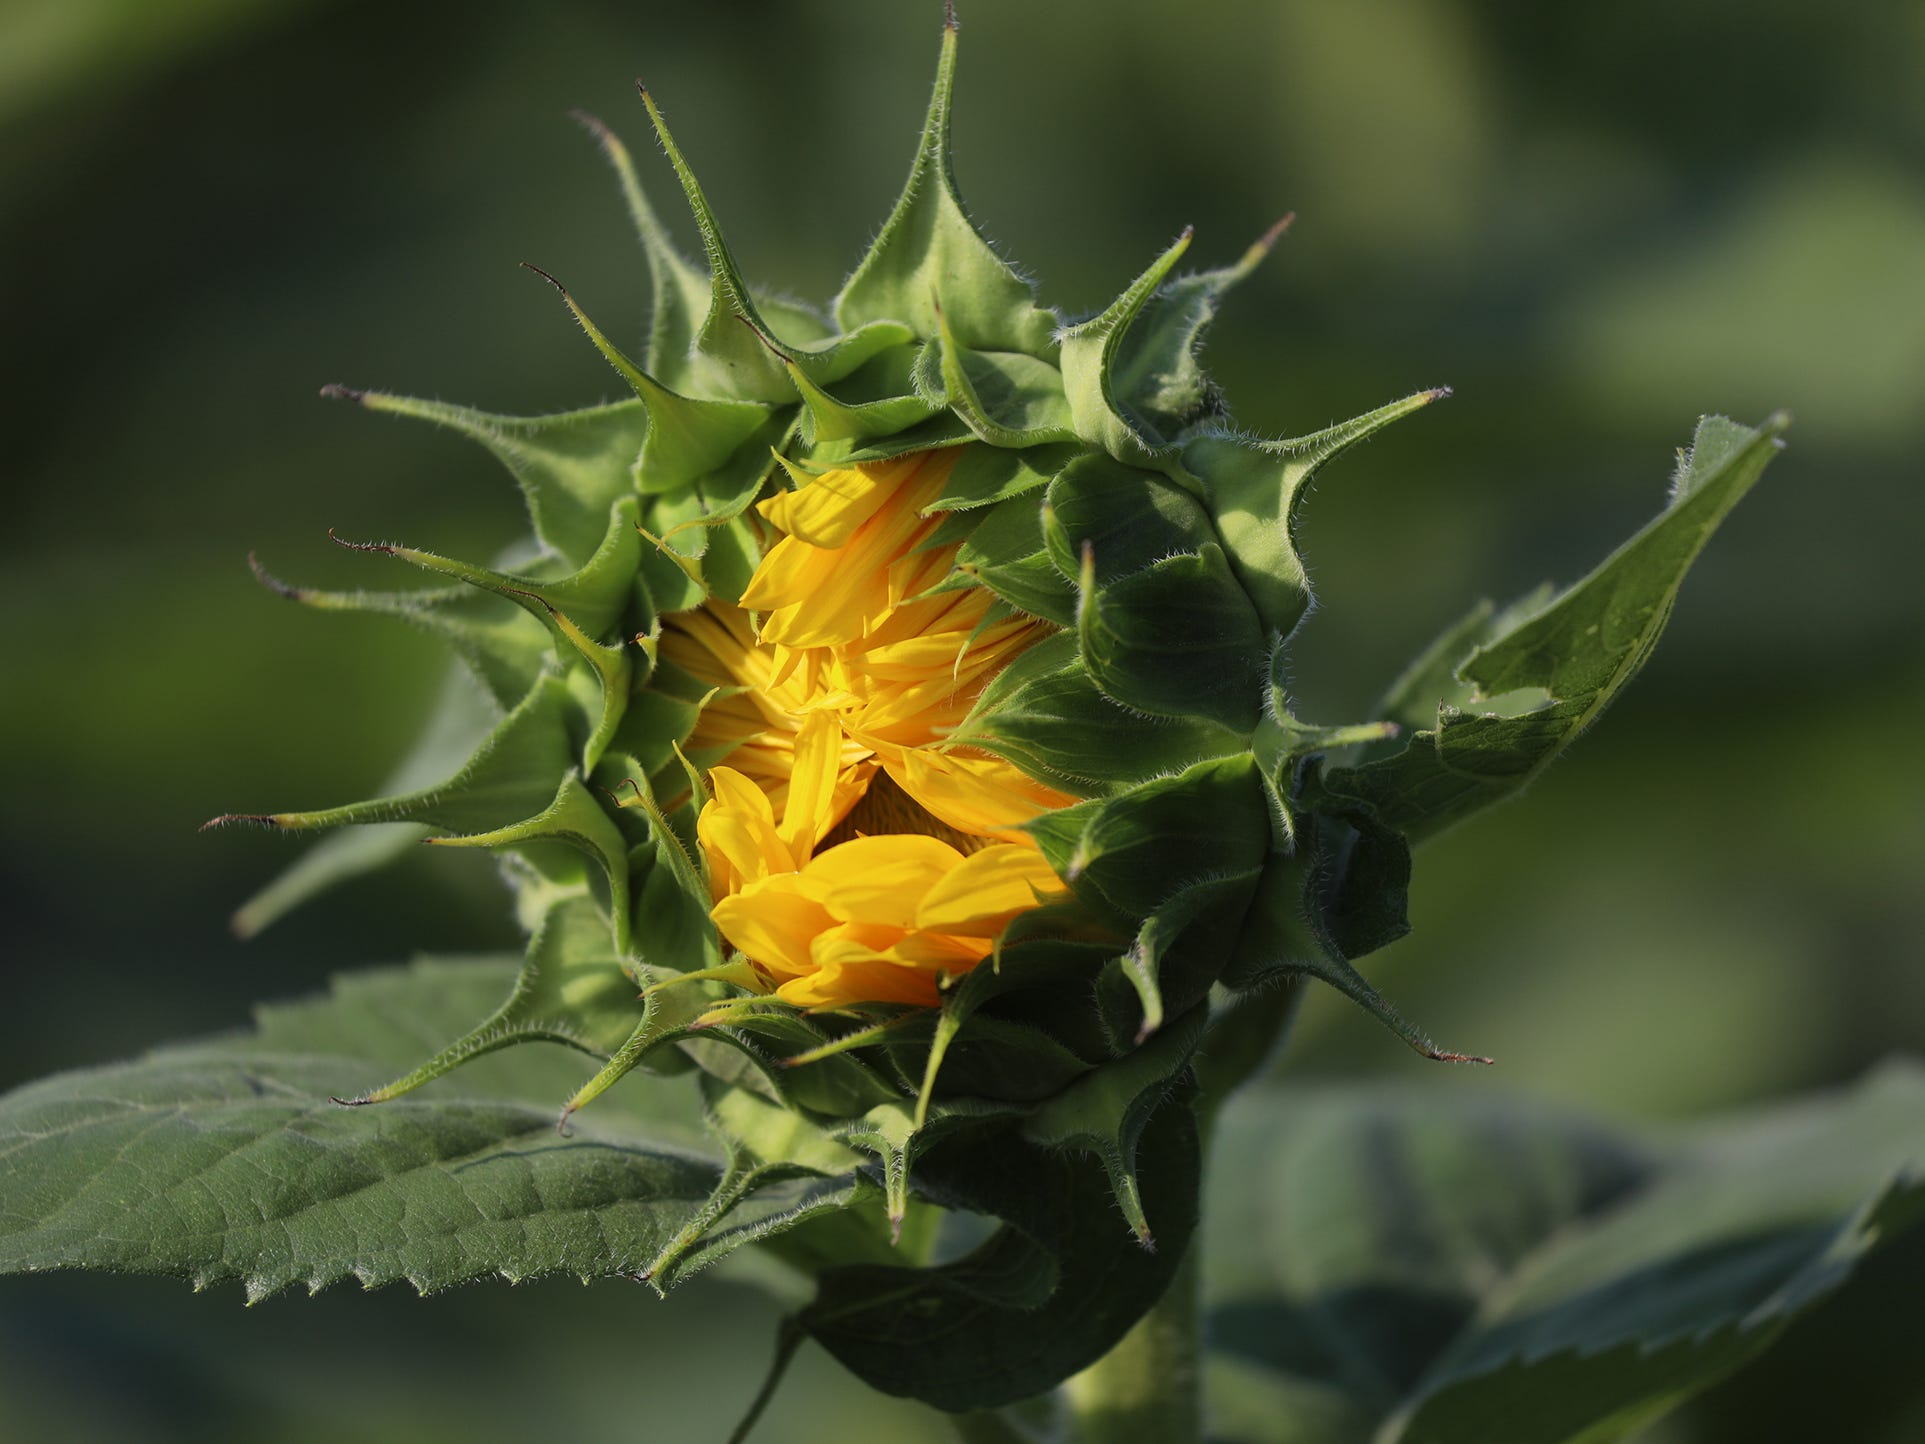 A sunflower is on the verge of opening.